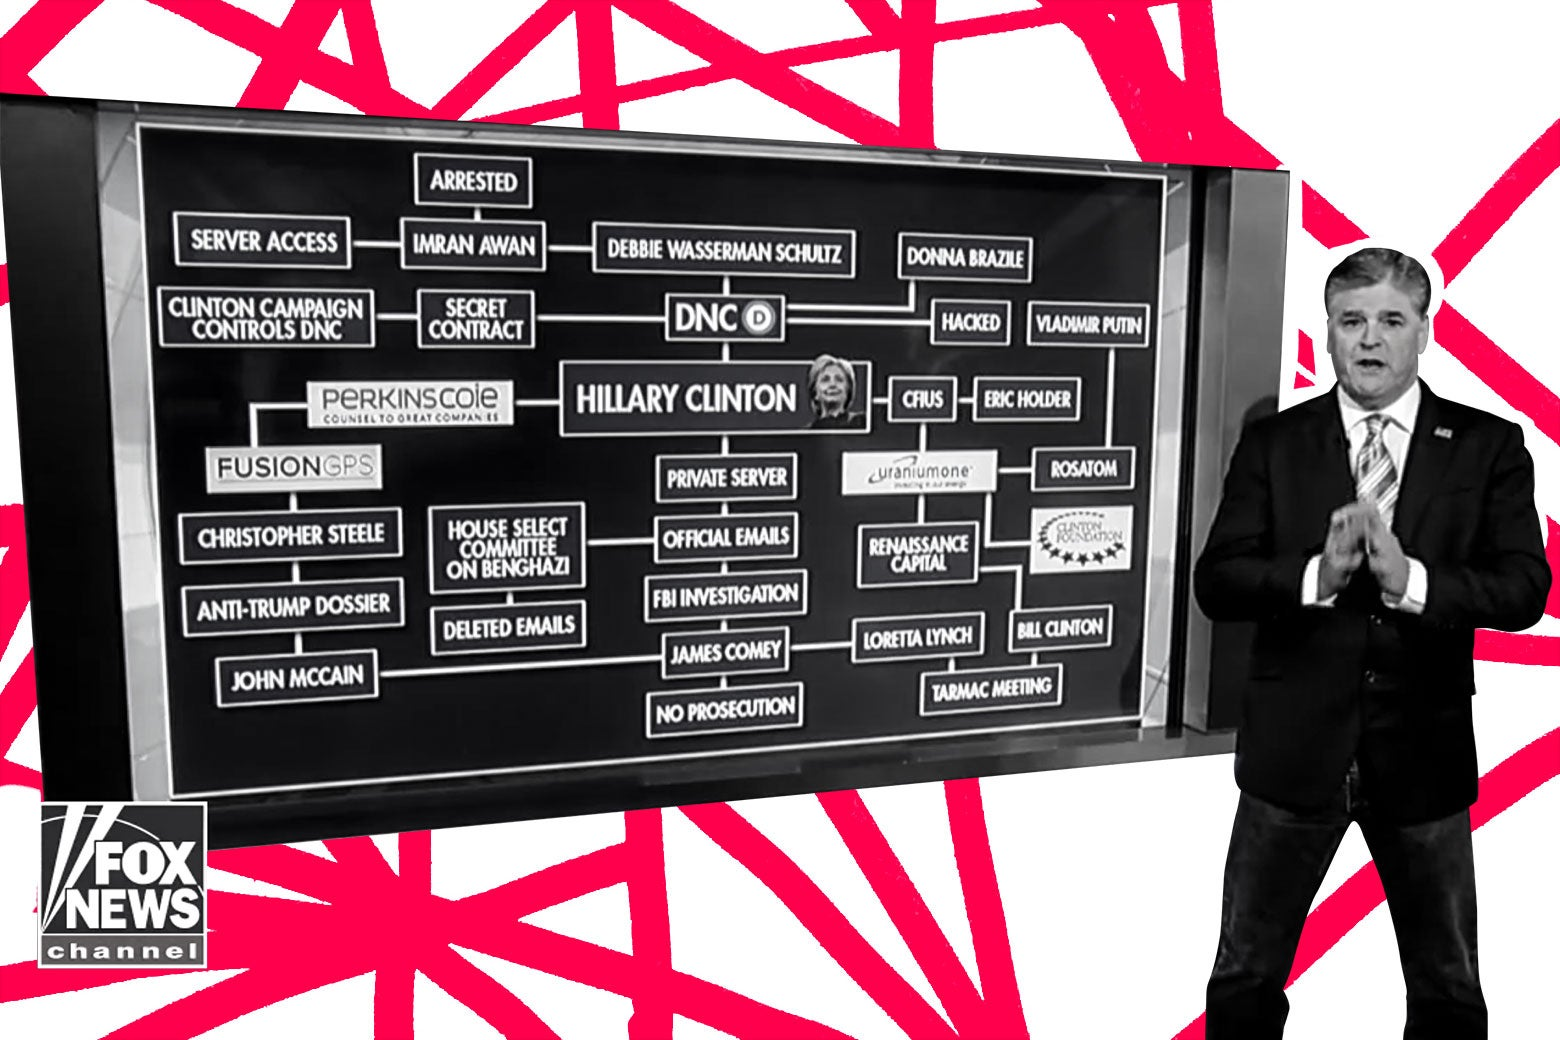 Sean Hannity in front of a flowchart on Fox News.